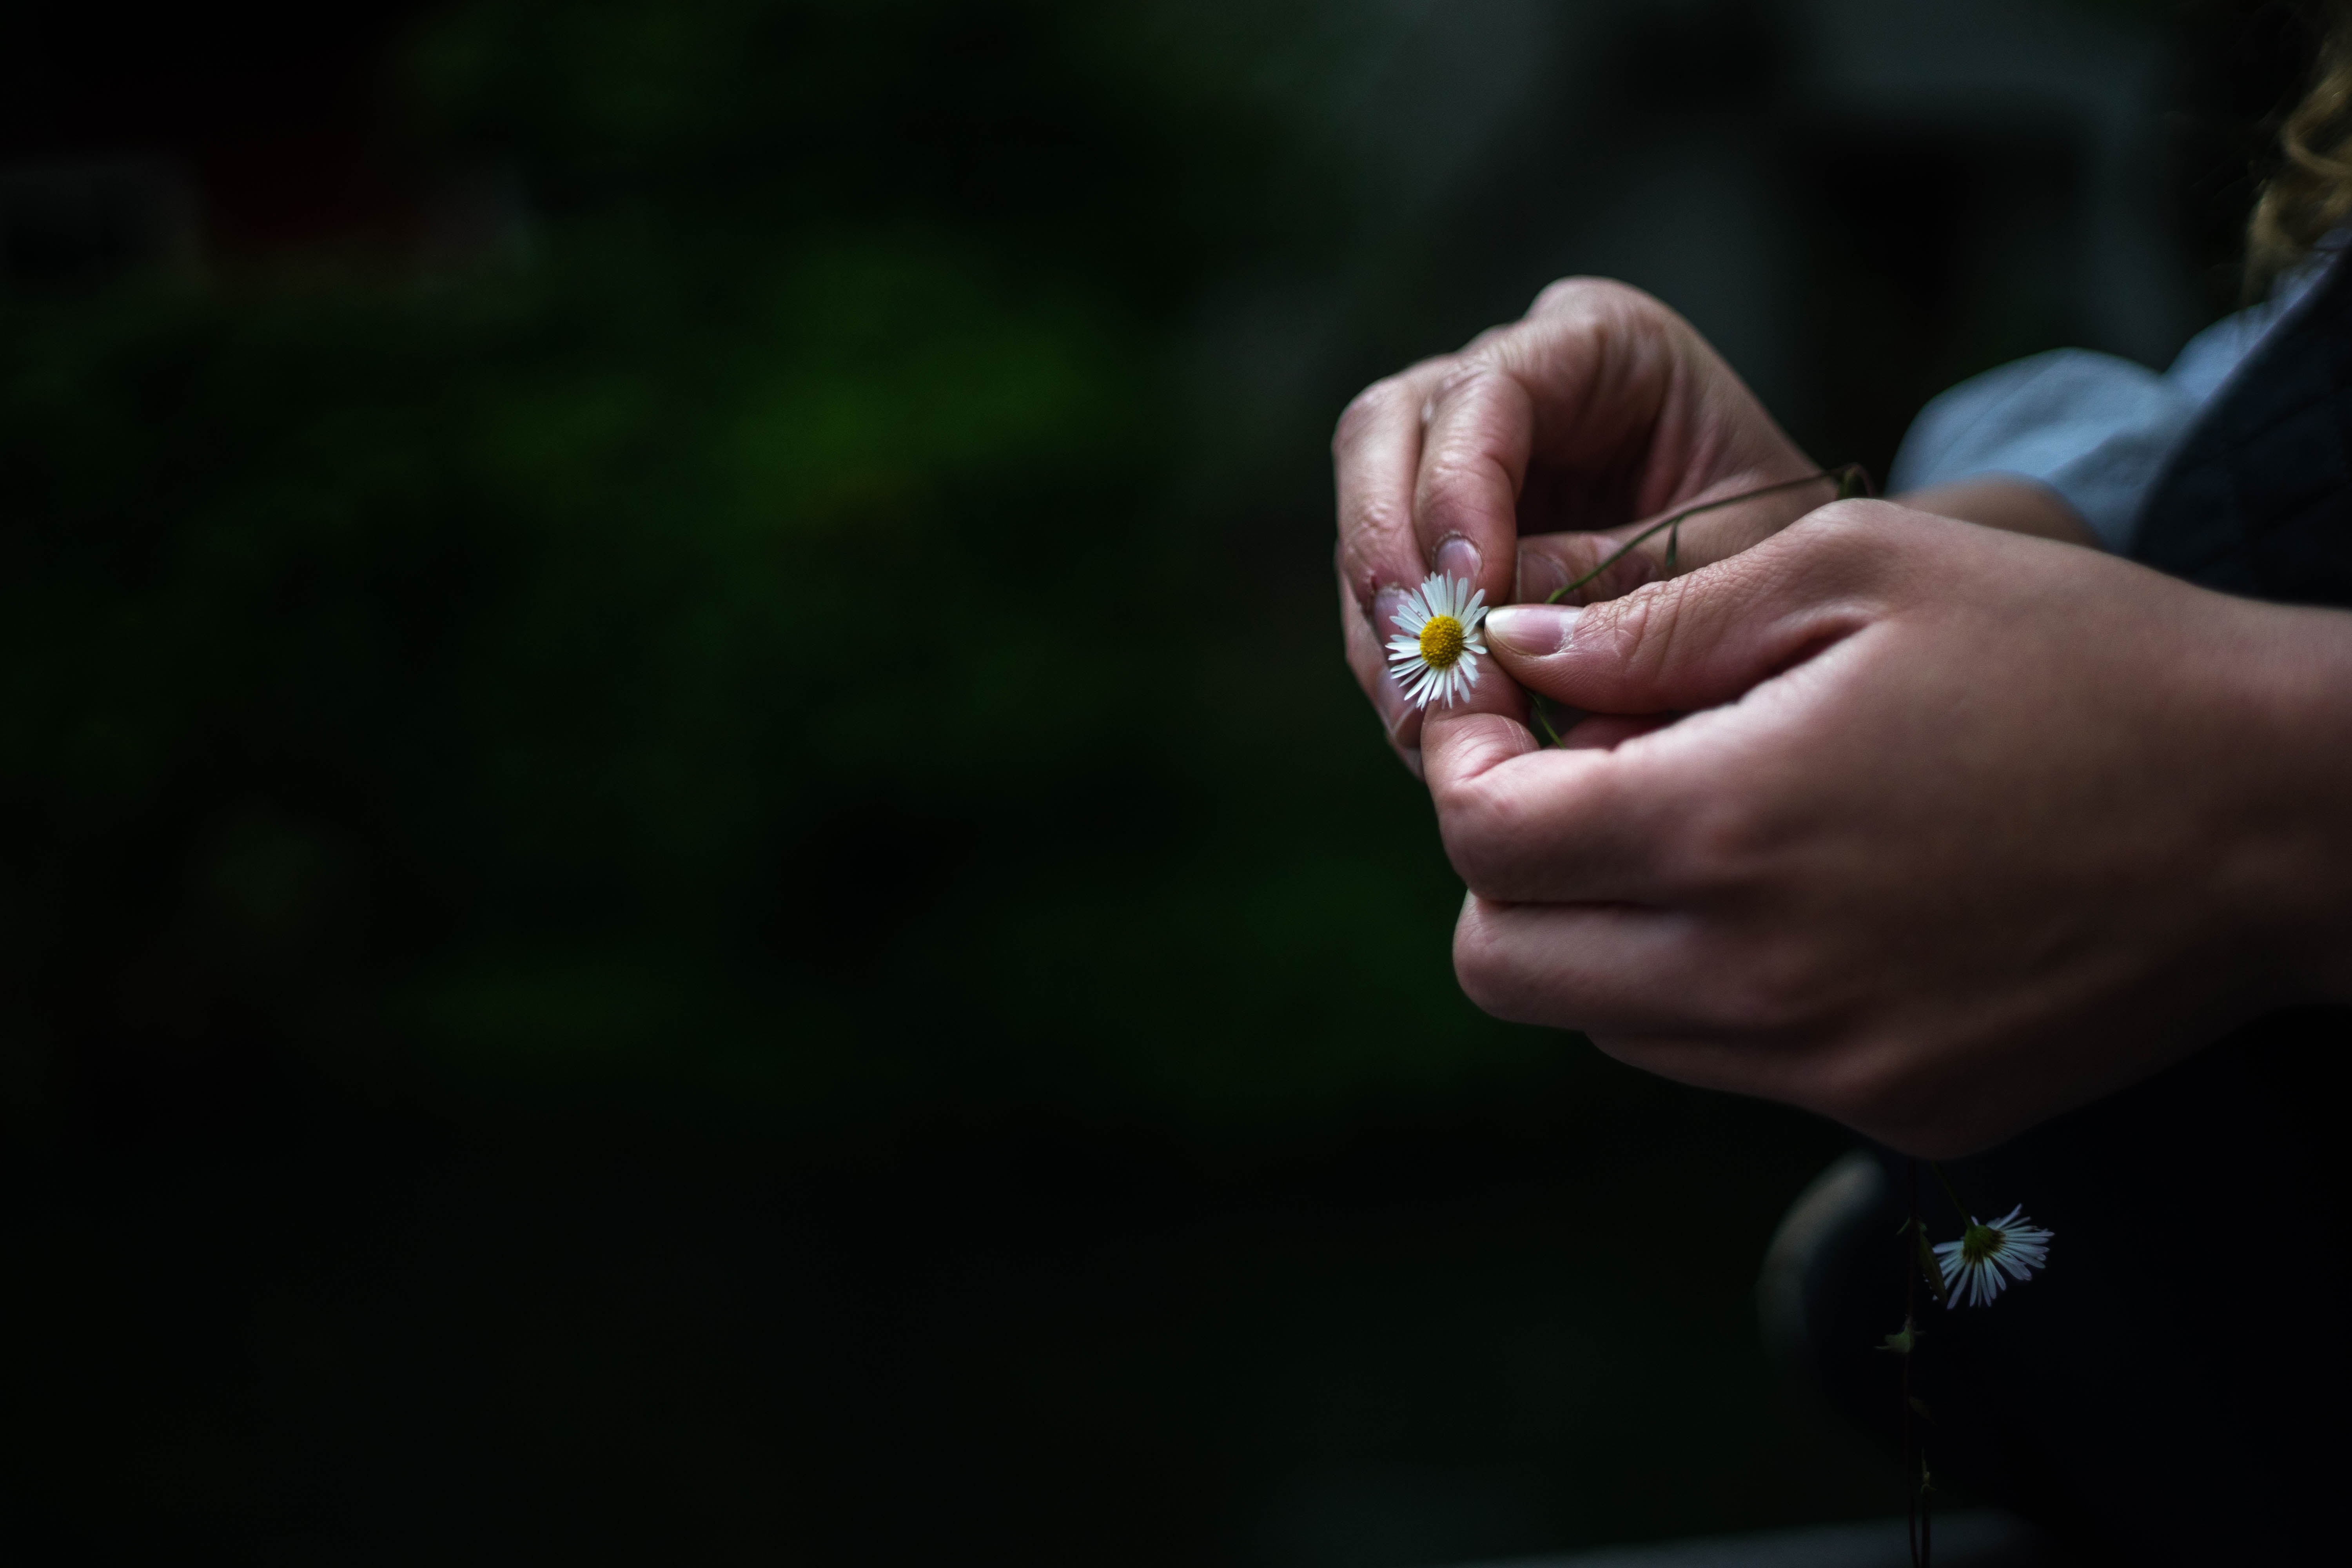 Hands holding a small daisy and picking its petals